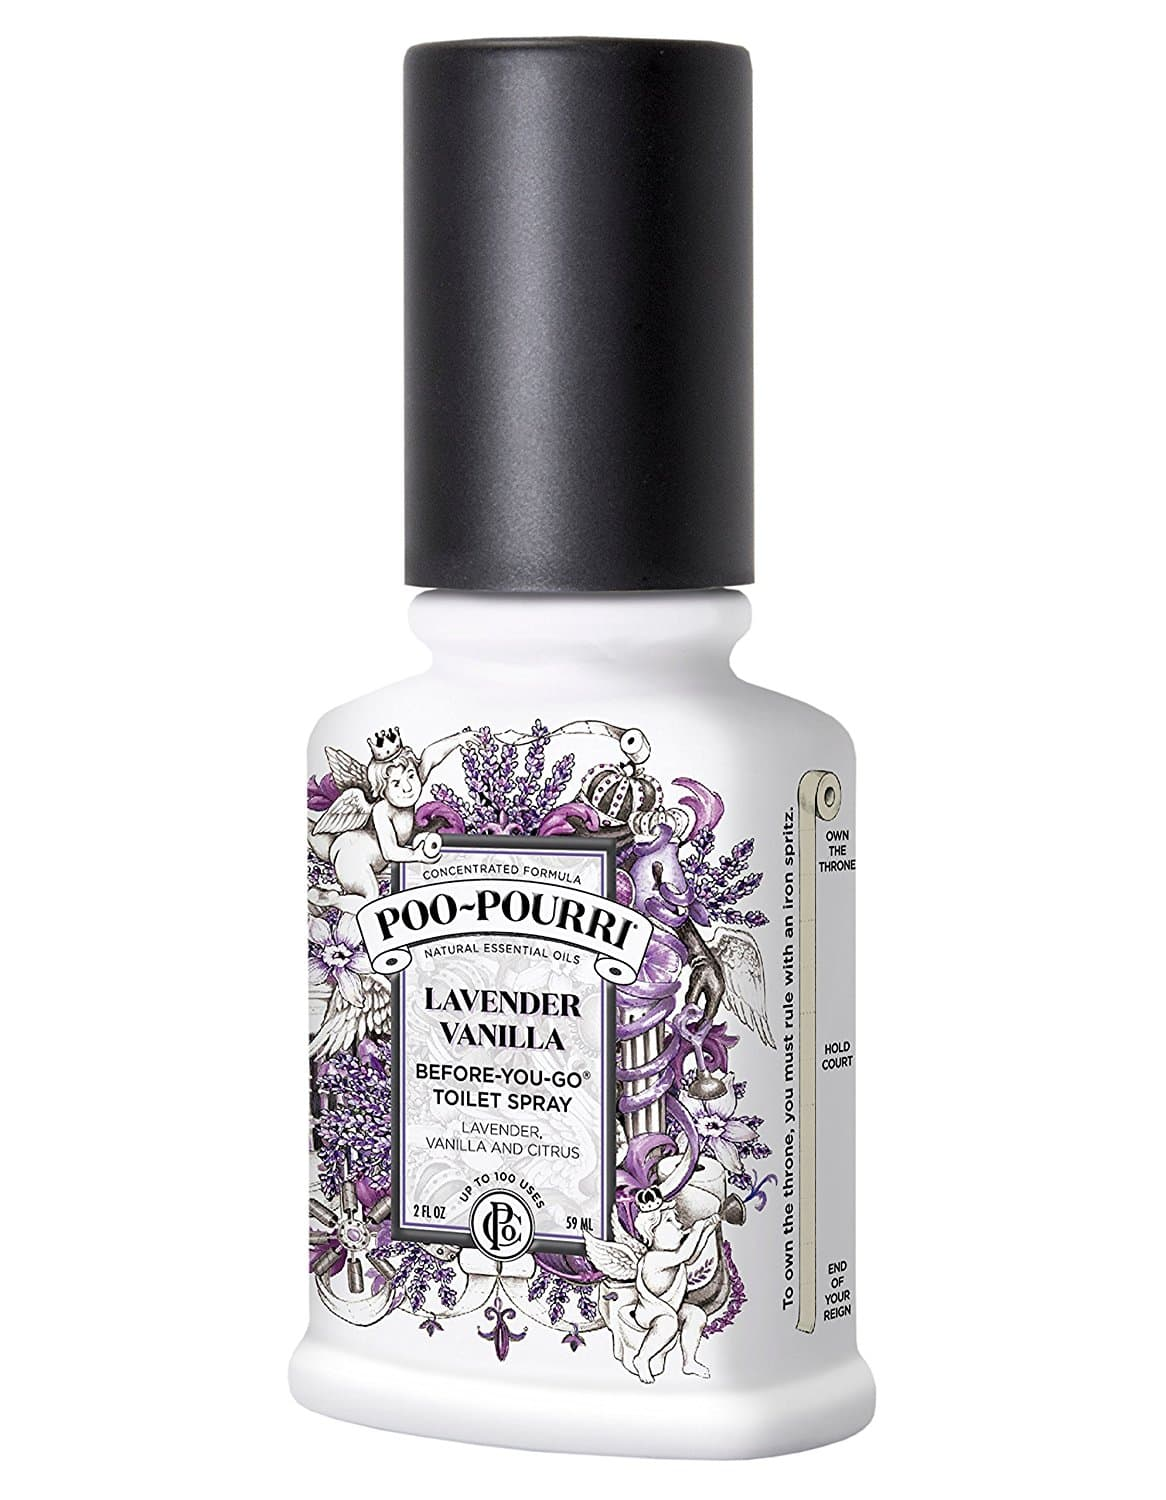 Poo-Pourri Before-You-Go Toilet Spray 4-Ounce Bottle, Lavender Vanilla Scent- Amazon add-on Item $7.69